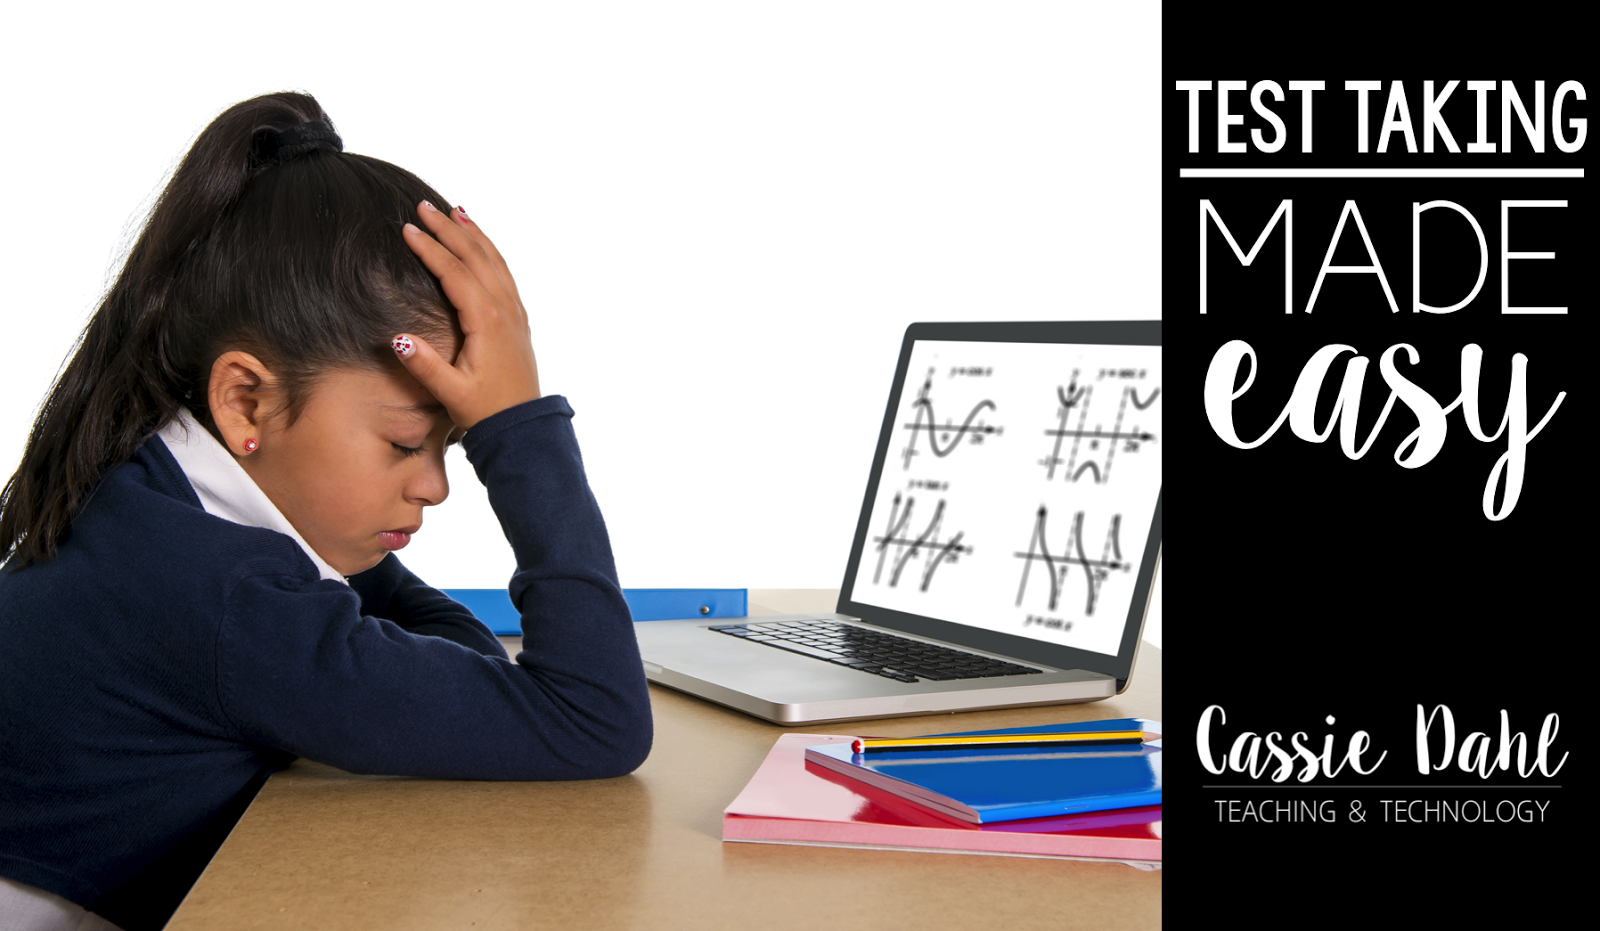 Here are some tips and tricks for reducing the stress and helping to make state test taking just a little bit easier.